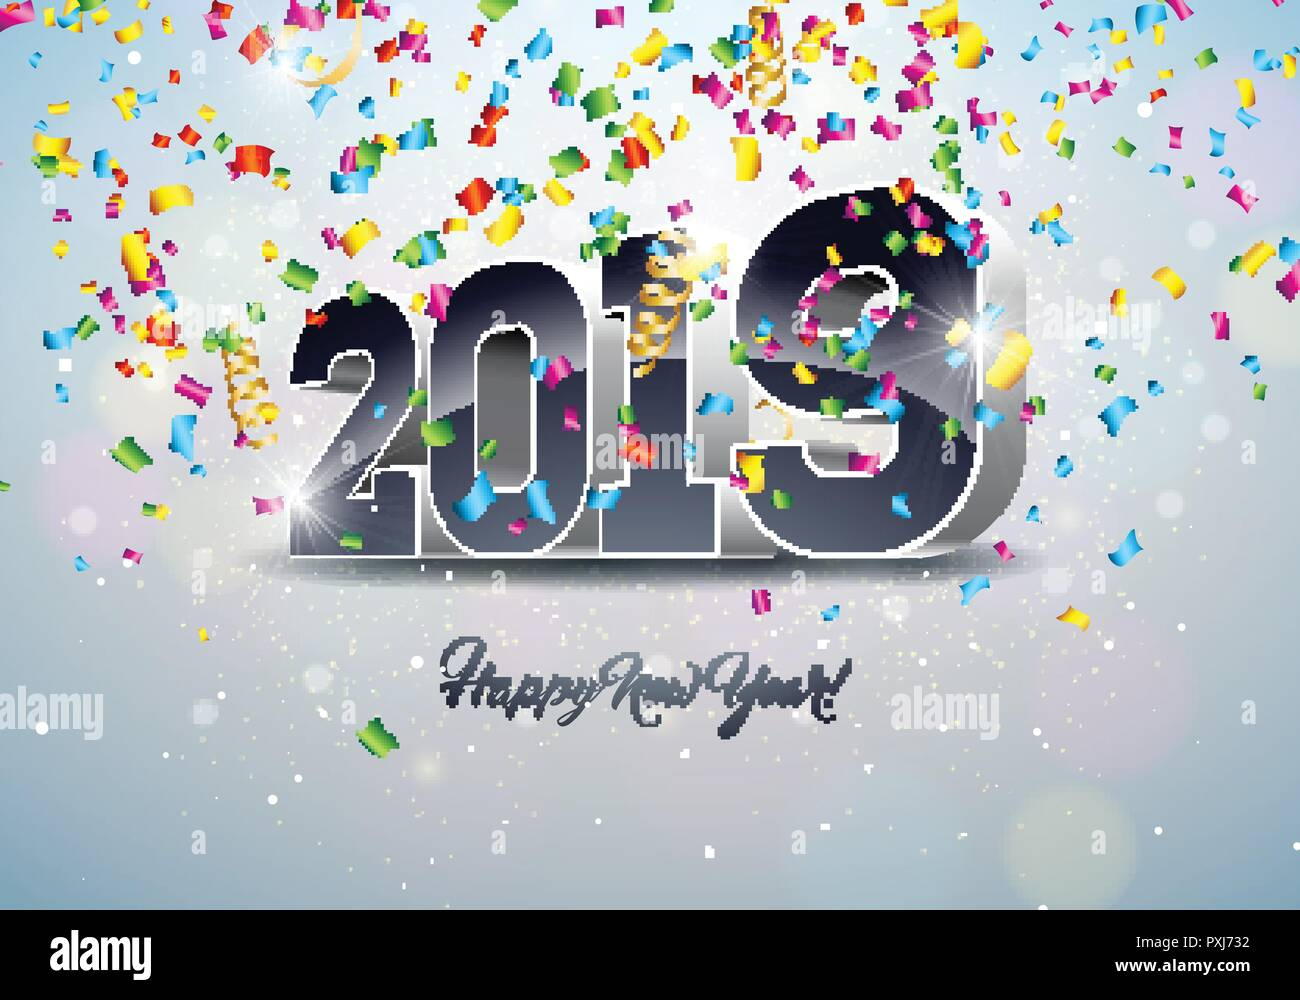 2019 Happy New Year Illustration With 3d Number And Falling Confetti